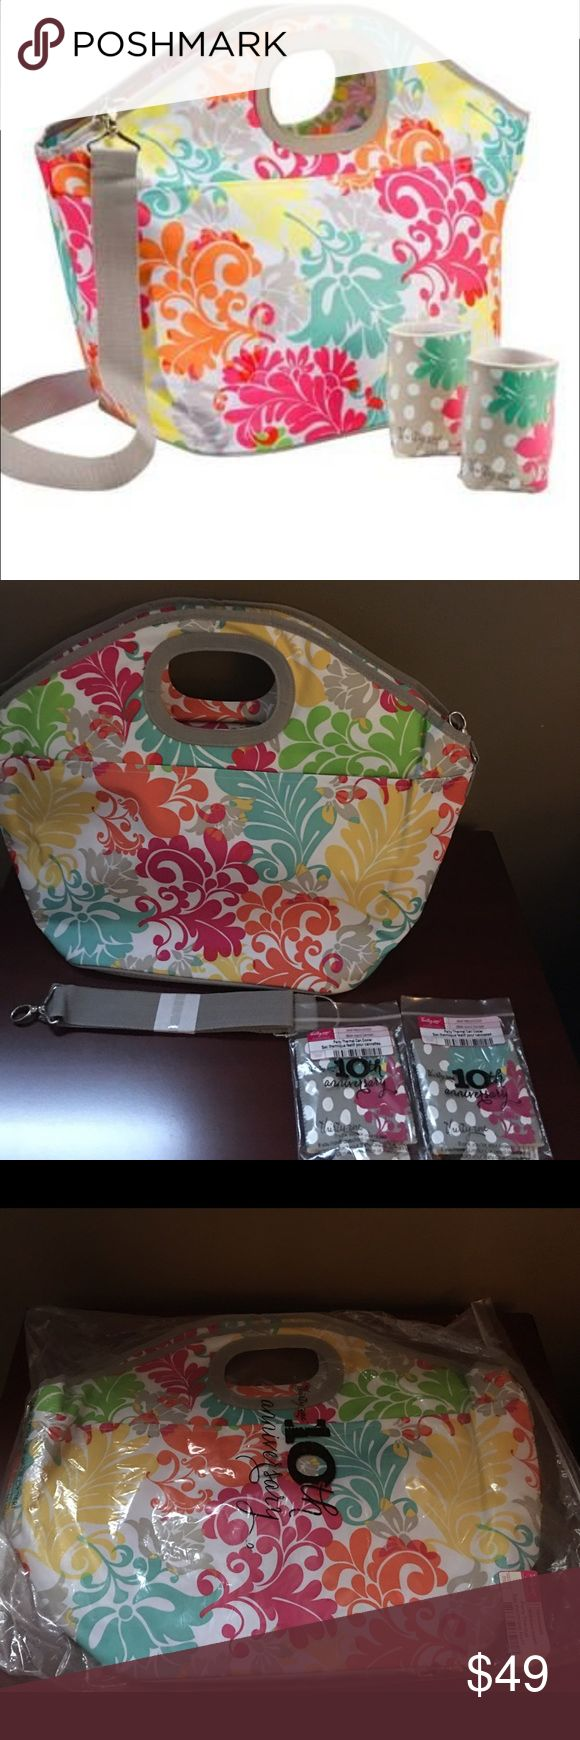 Thirty-One Party Thermal Cooler in Island Damask New in Bag Thirty-One Party Thermal Cooler in Island Damask.  This 31 retired item was a hostess exclusive and includes two 31 10th anniversary drink cozies and strap.  Large enough for your family picnics Thirty-One Bags Totes